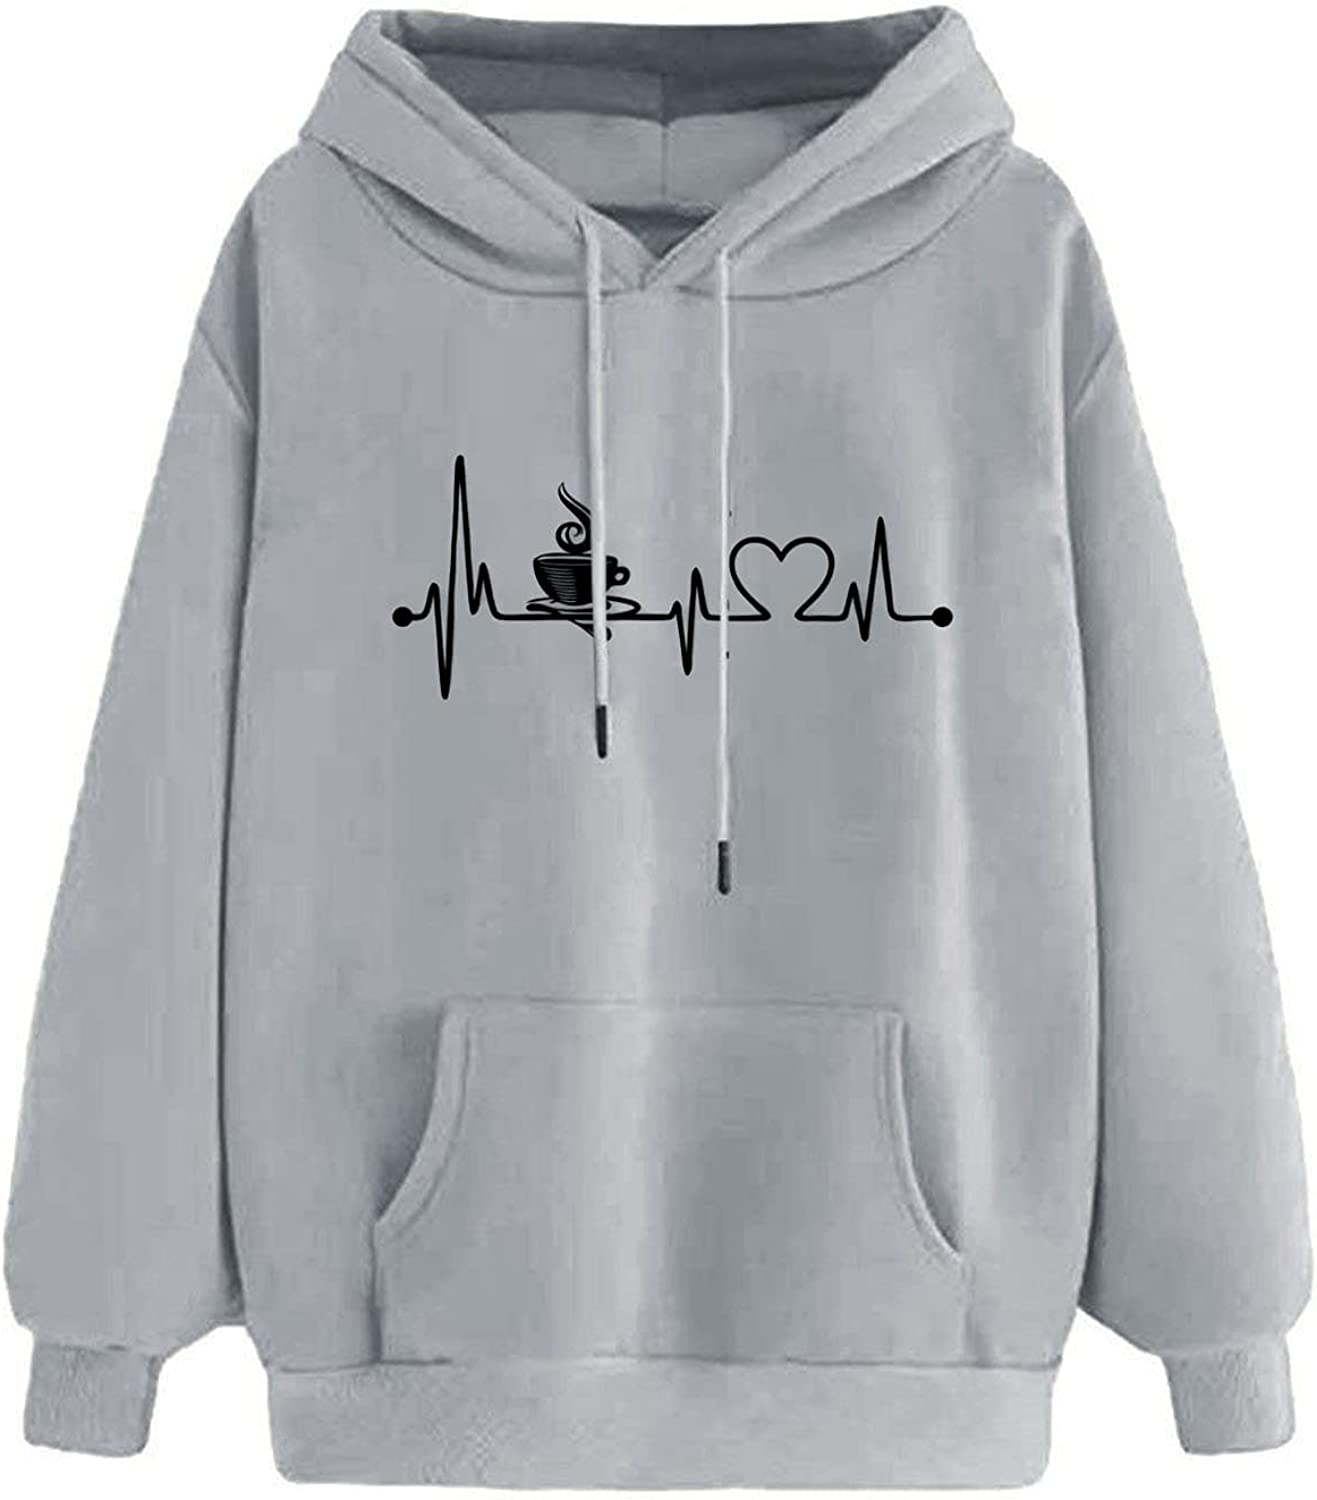 Women's 67% OFF Max 61% OFF of fixed price Casual Pullover Sweatshirts Plus Loose Heart Size Print